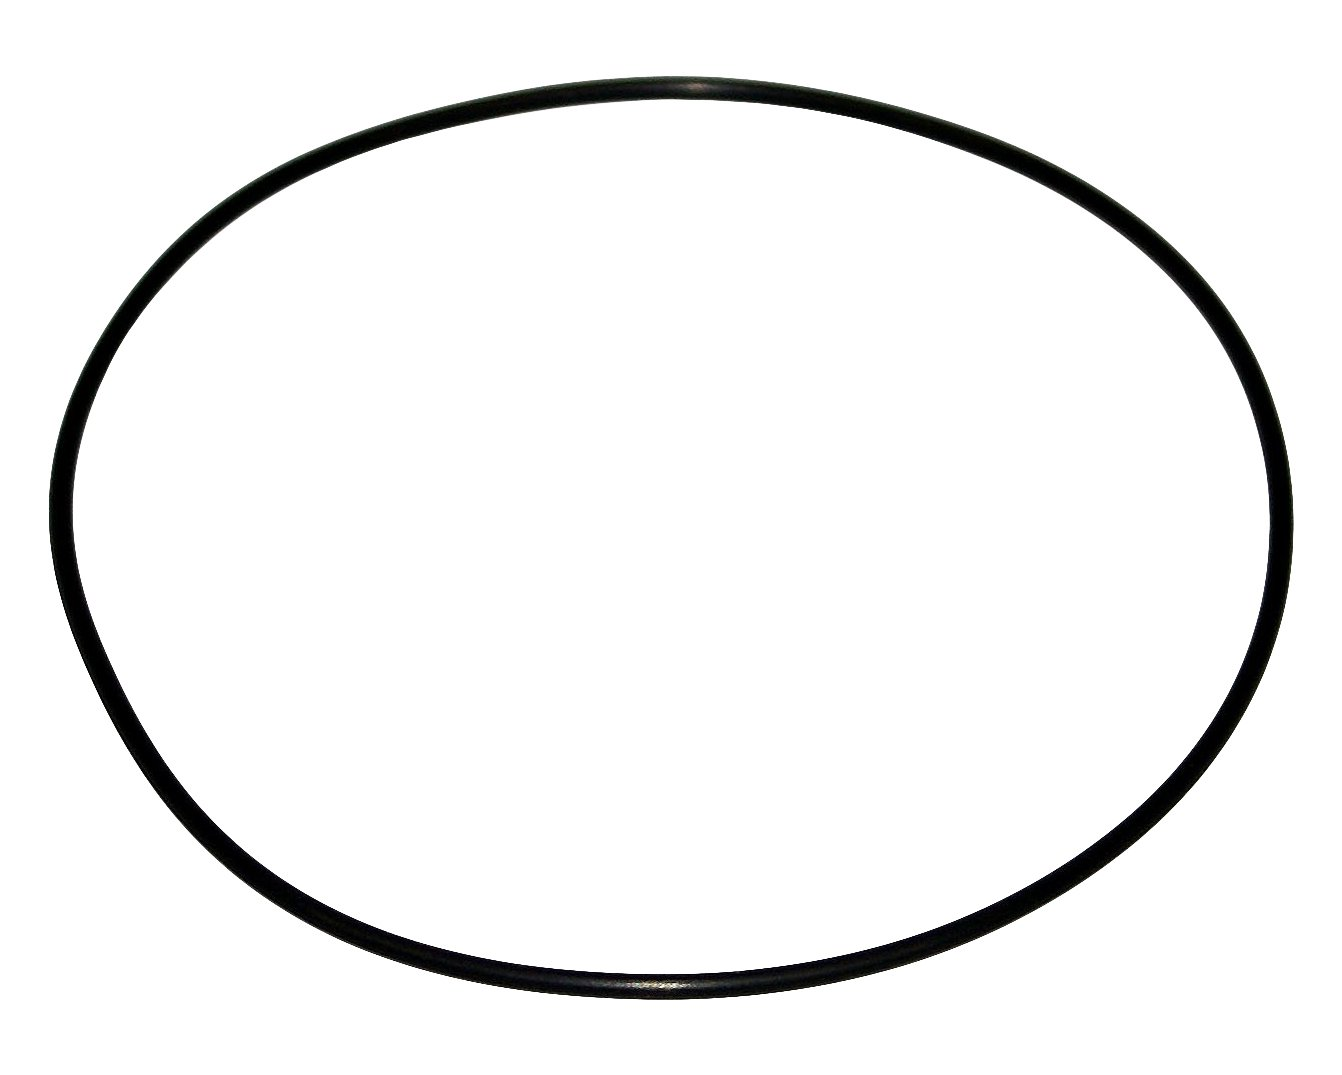 15 ID ORVT459 Viton Number 459 Standard O-Ring 15-1//2 OD 15 ID 15-1//2 OD Sur-Seal STCC Sterling Seal and Supply 70 Durometer Hardness Fluoropolymer Elastomer